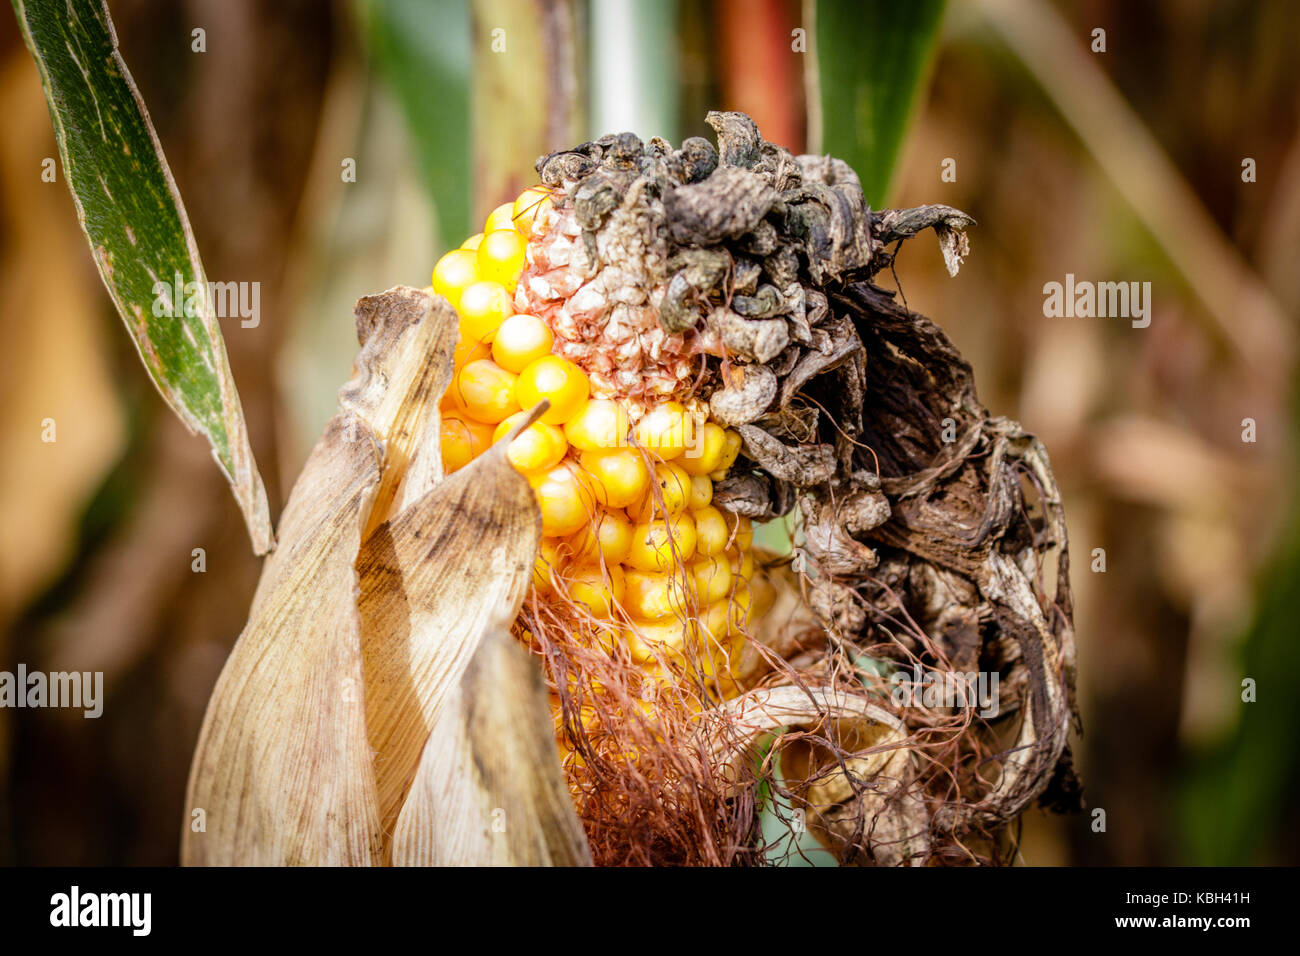 A corn maze or maize maze is a maze cut out of a corn field. The first corn maze was in Annville, Pennsylvania. - Stock Image